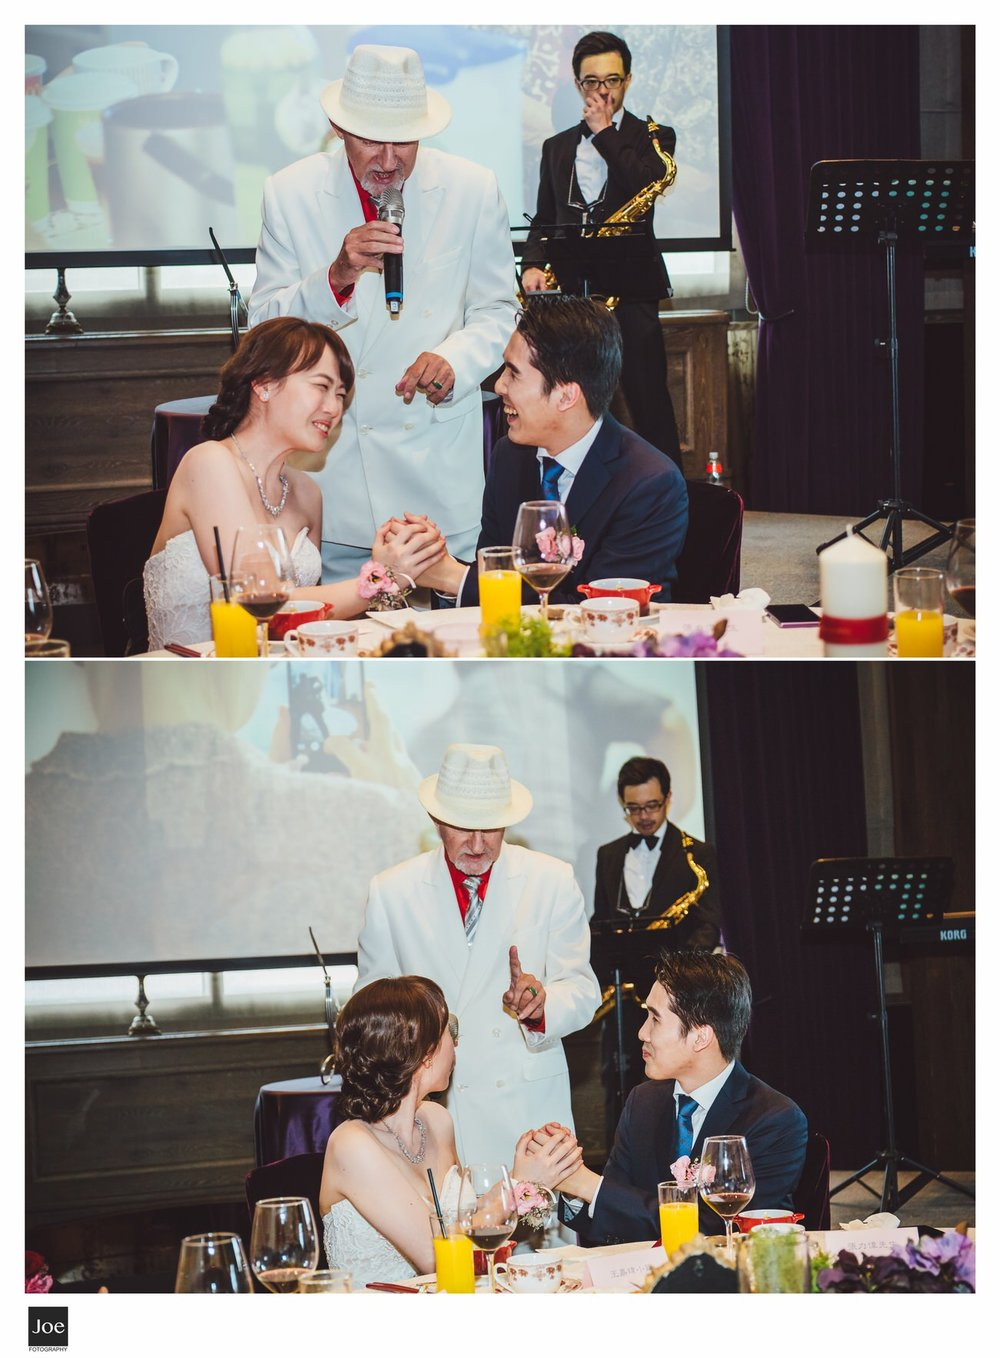 joe-fotography-wedding-photo-palais-de-chine-hotel-046.jpg